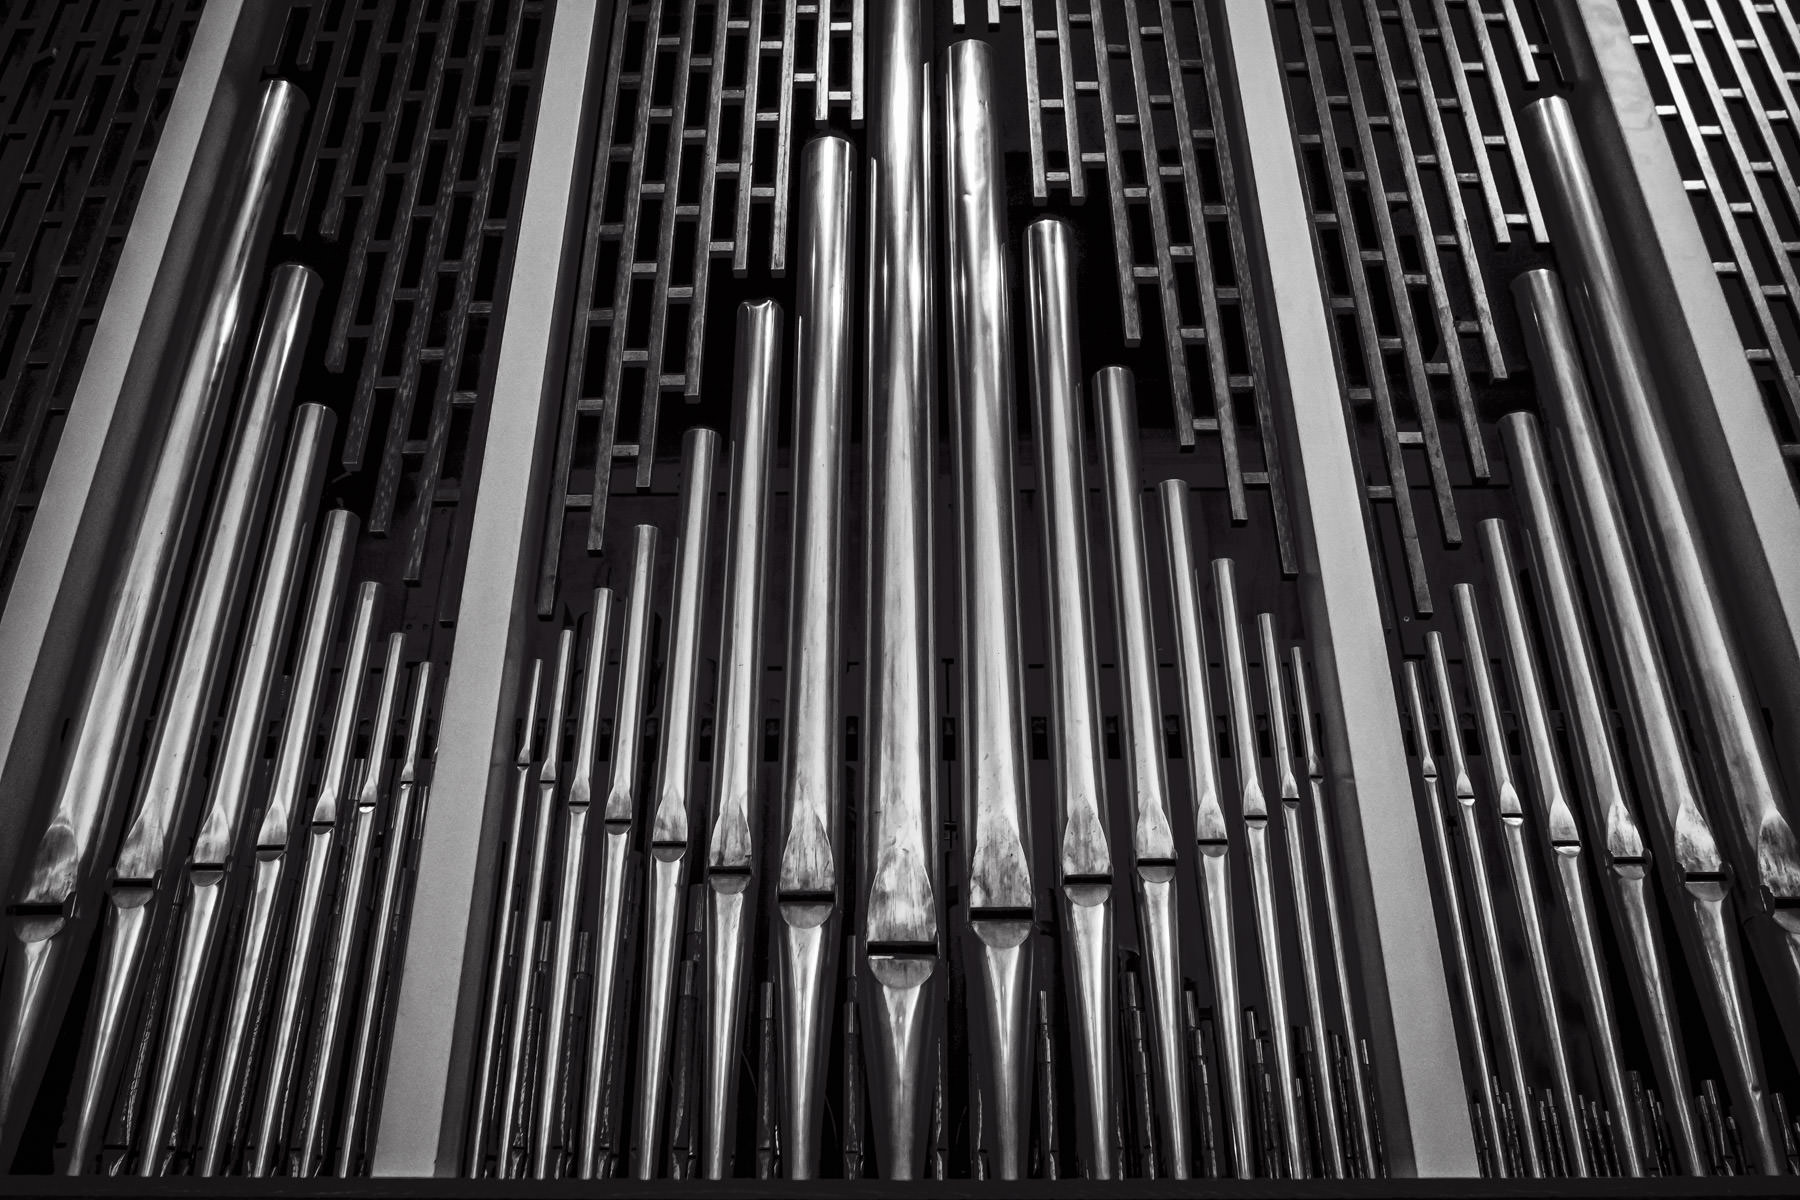 Detail of a few of the 3,750 pipes that make up the Æolian-Skinner Opus 1167 organ at Southern Methodist University's Perkins Chapel in Dallas.